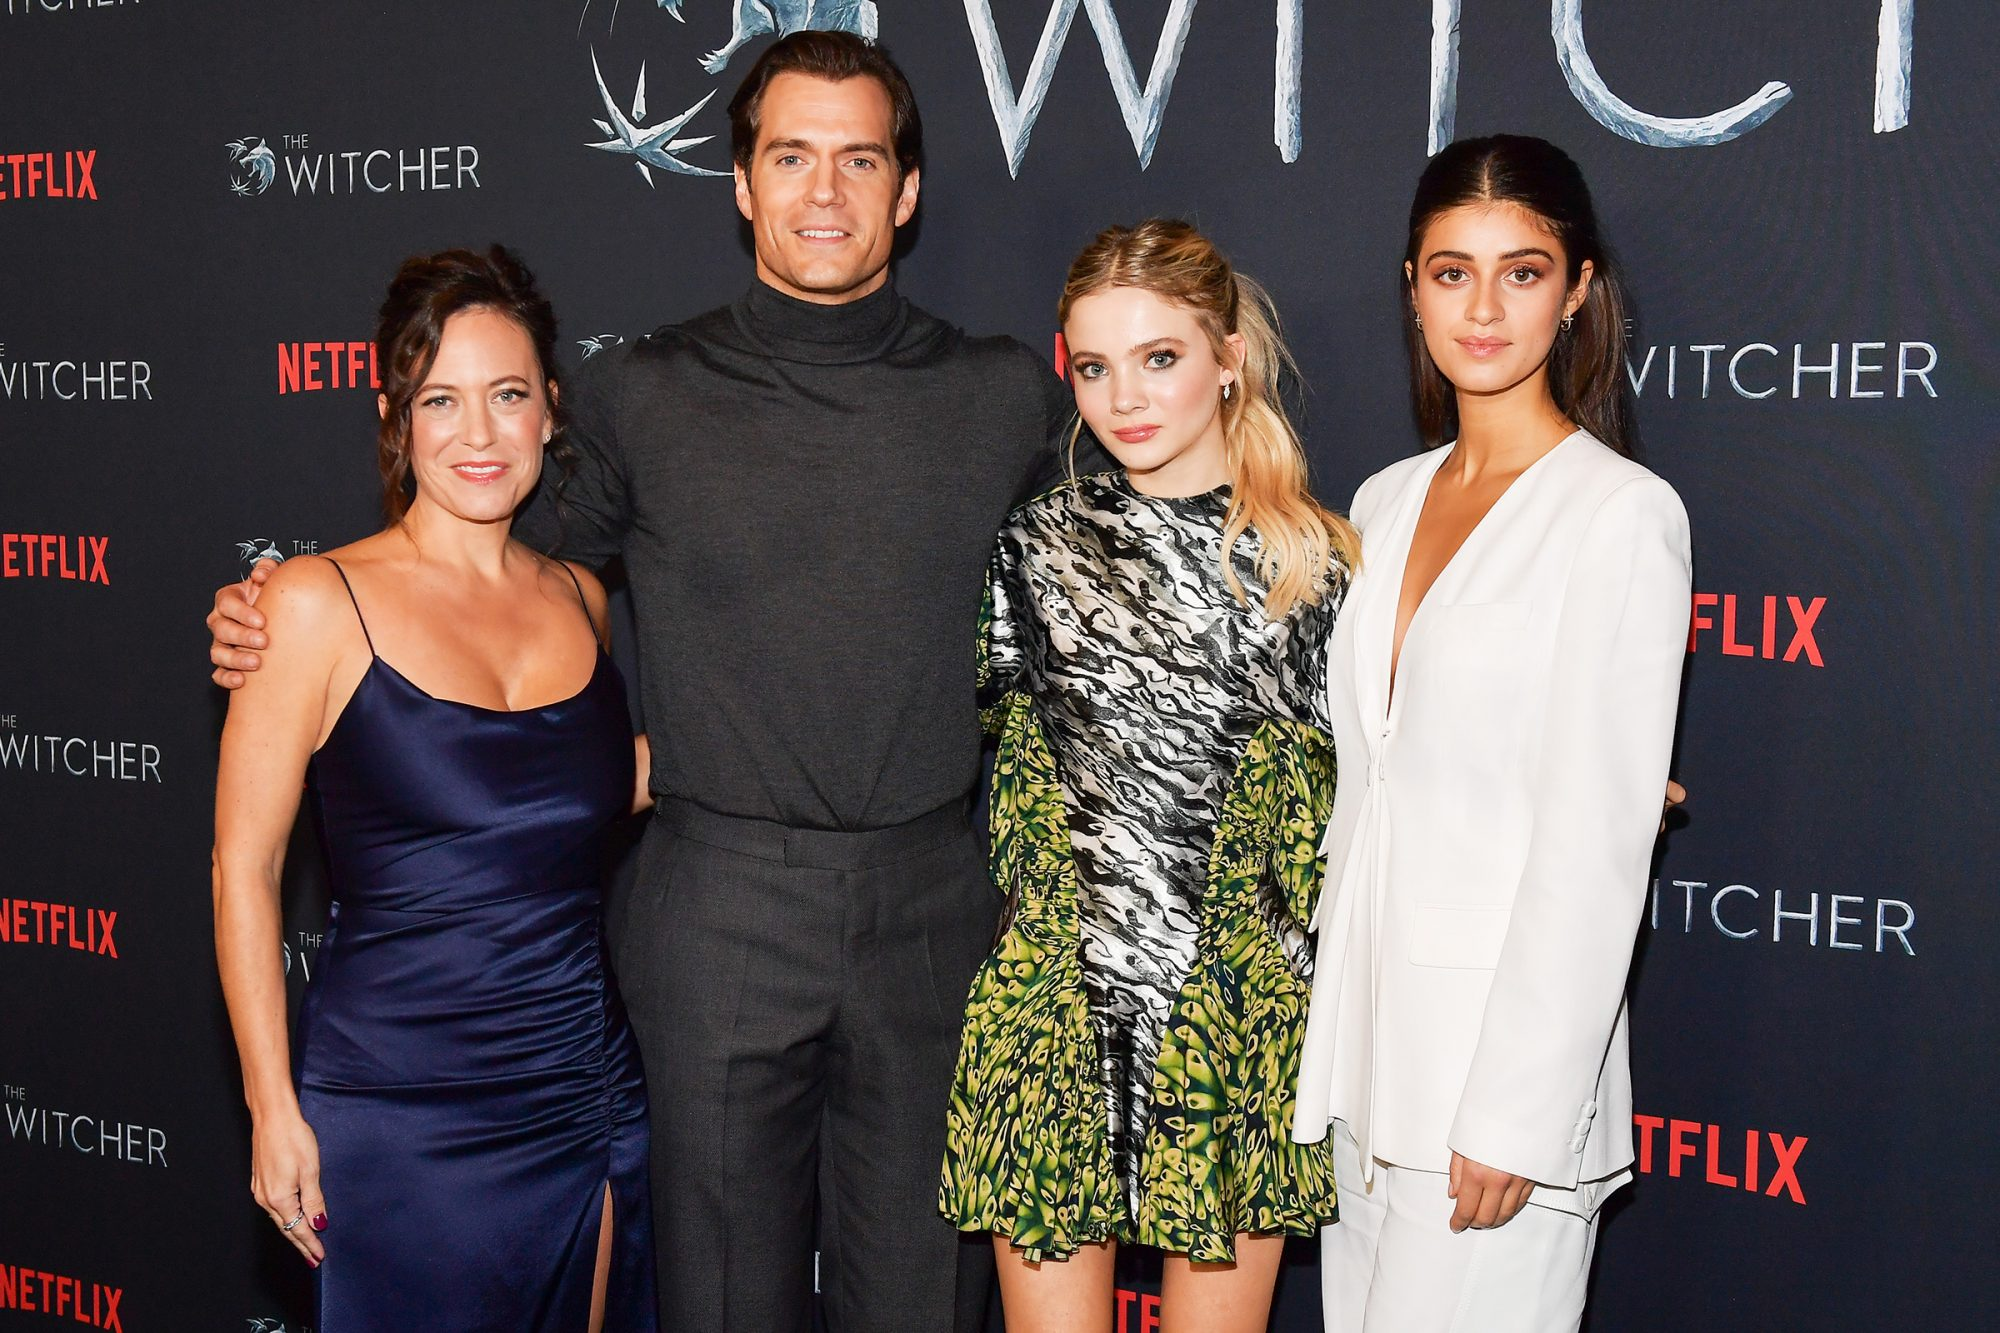 """Lauren Schmidt Hissrich, Henry Cavill, Freya Allan, and Anya Chalotra attend the photocall for Netflix's """"The Witcher"""" season 1 at the Egyptian Theatre on December 03, 2019 in Hollywood"""